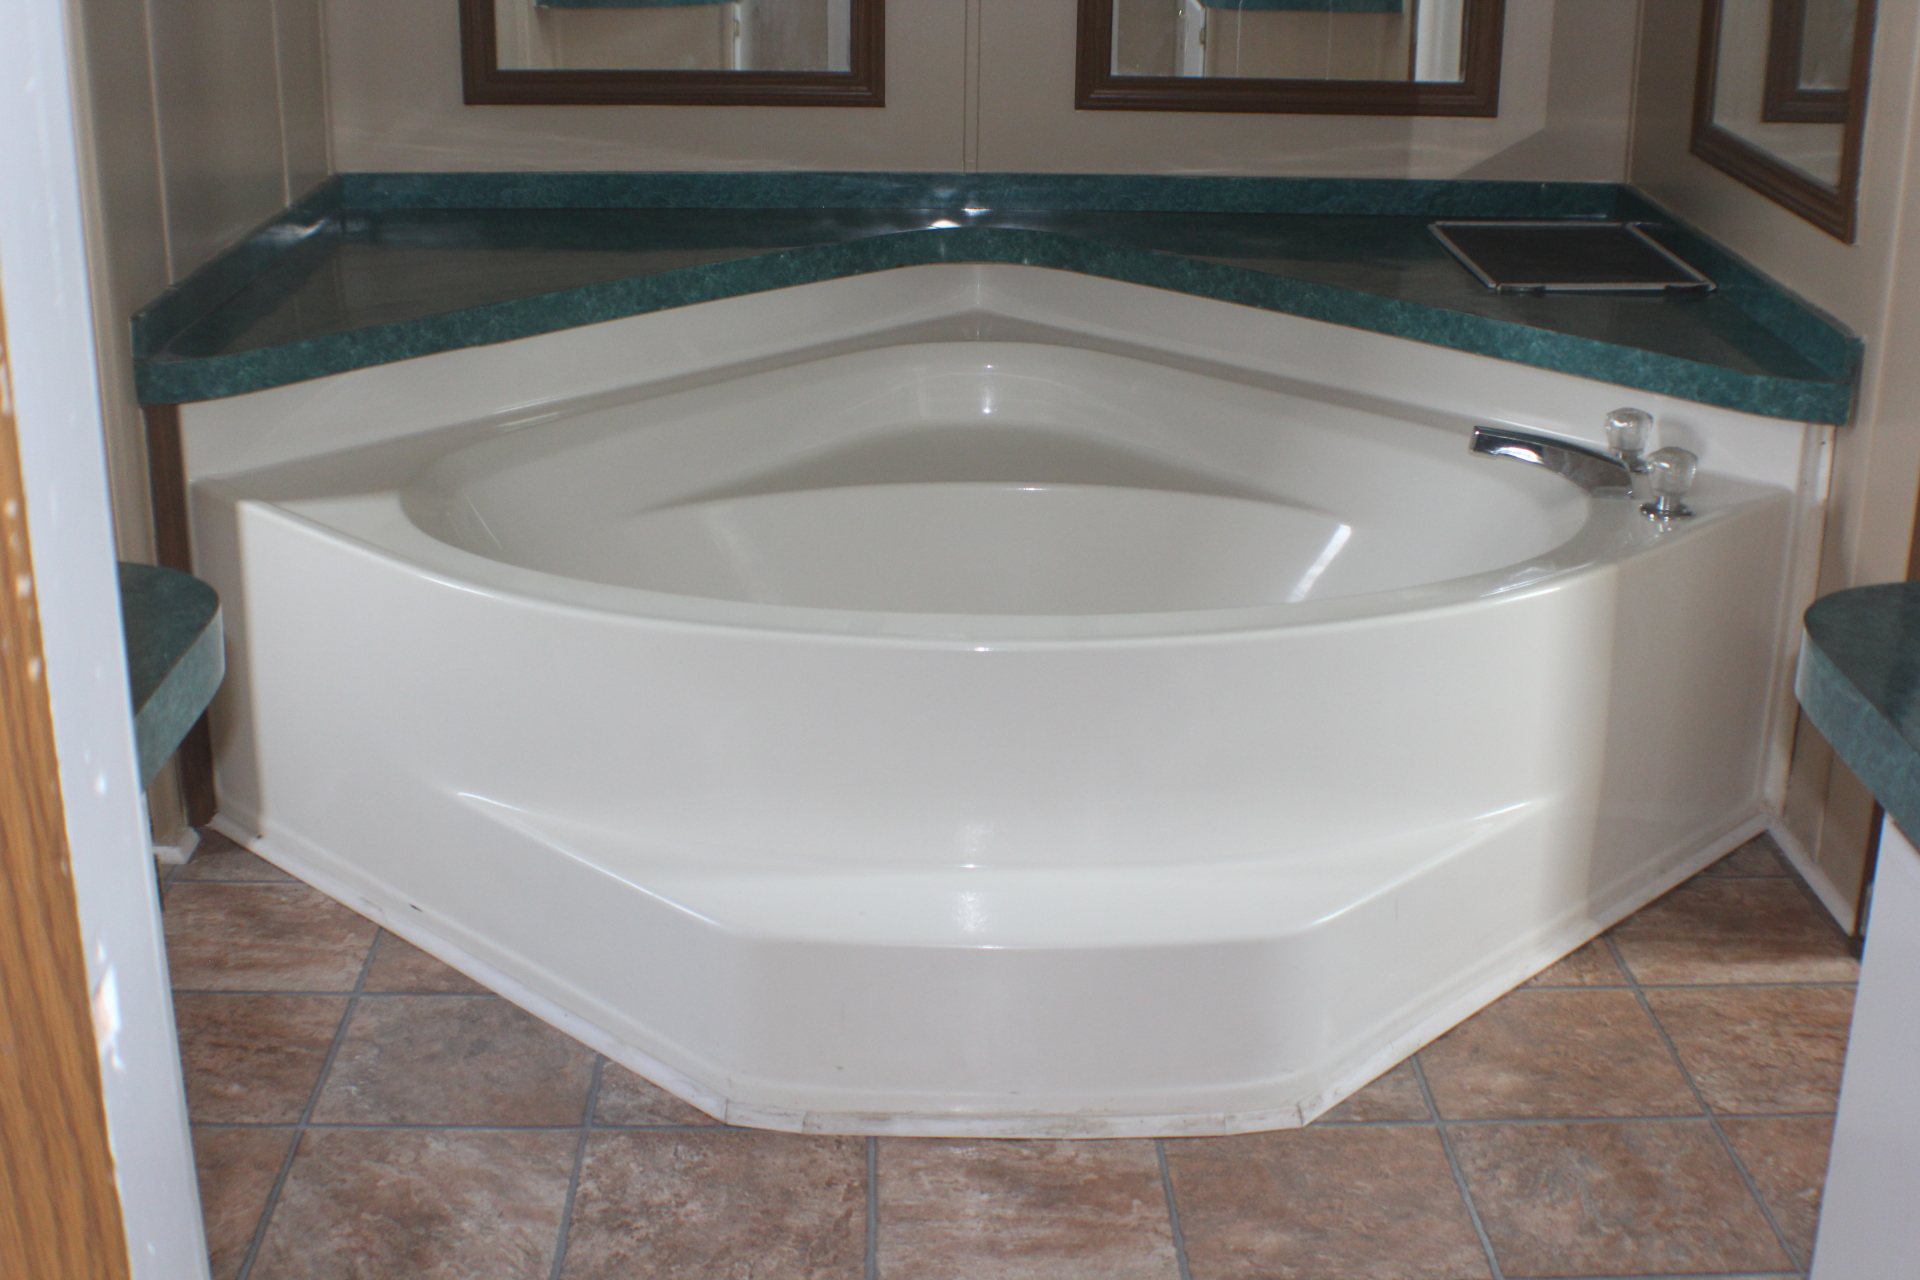 New garden tub and floors